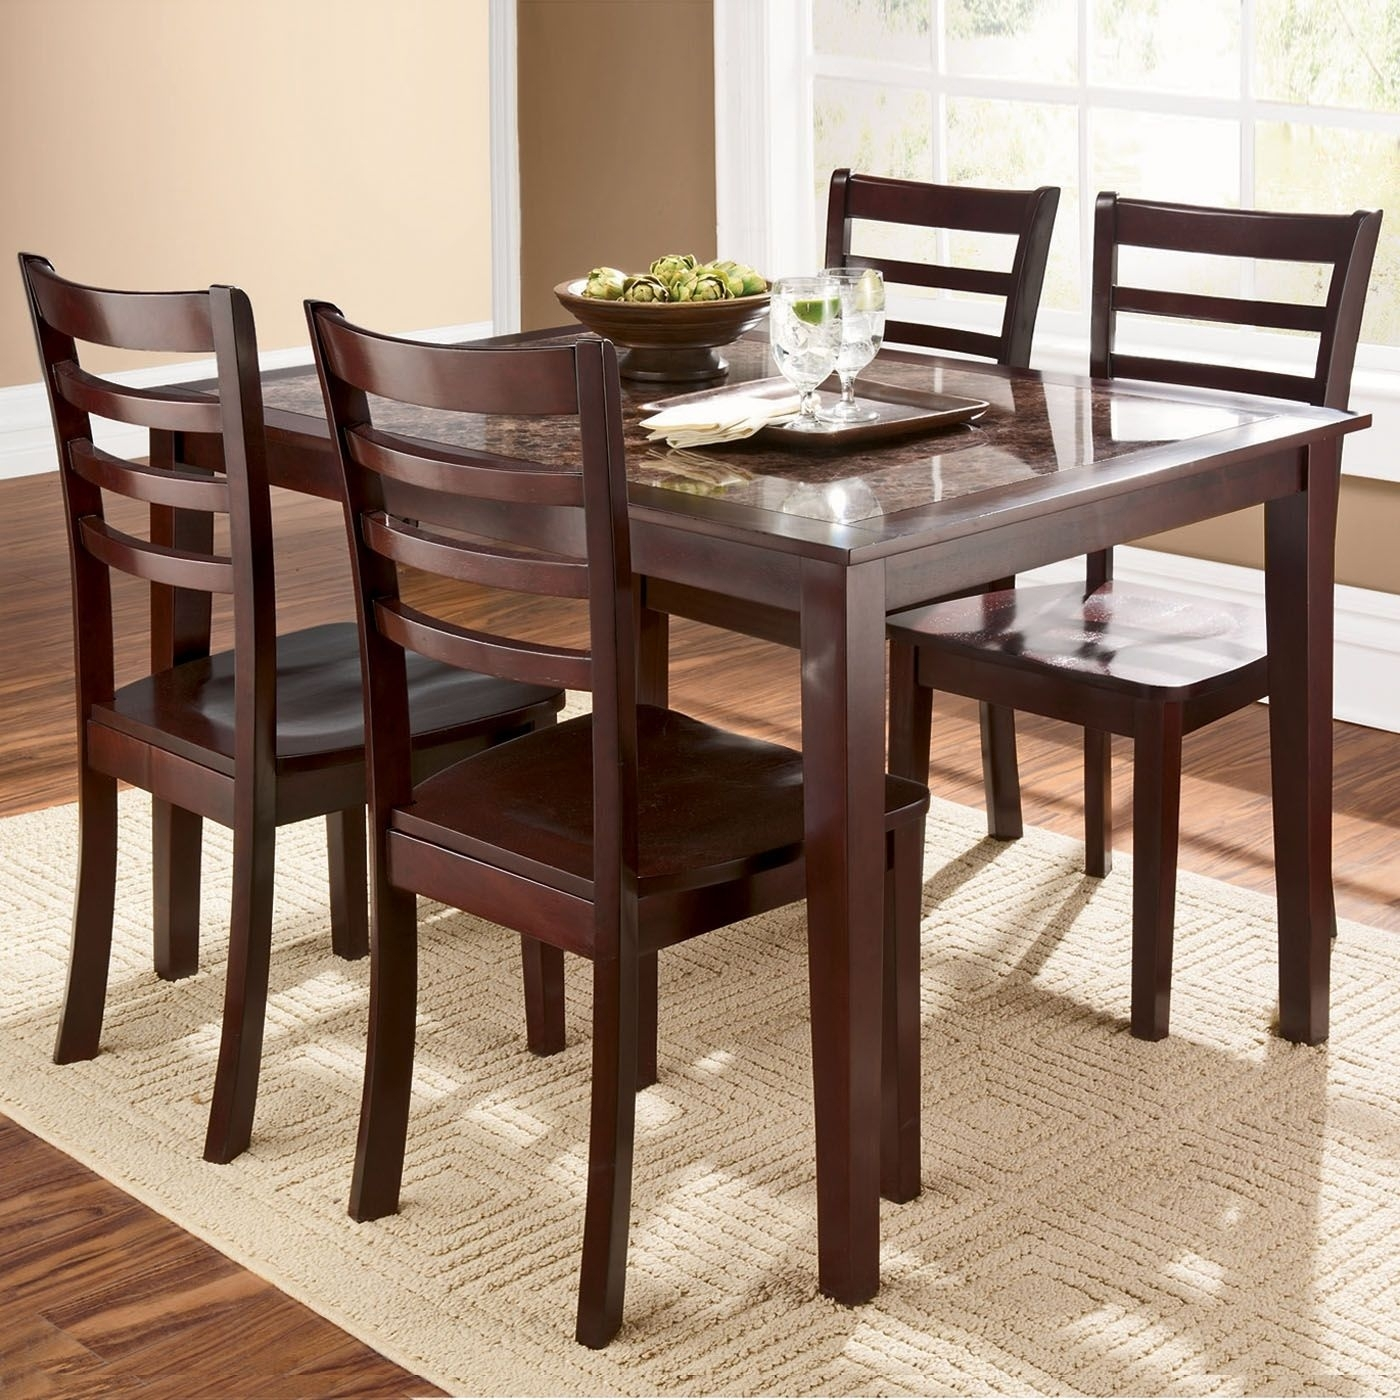 Dining Tables & Chairs | Cascade Faux Marble 5 Piece Dining Set With Regard To Current Caden 5 Piece Round Dining Sets With Upholstered Side Chairs (View 16 of 20)